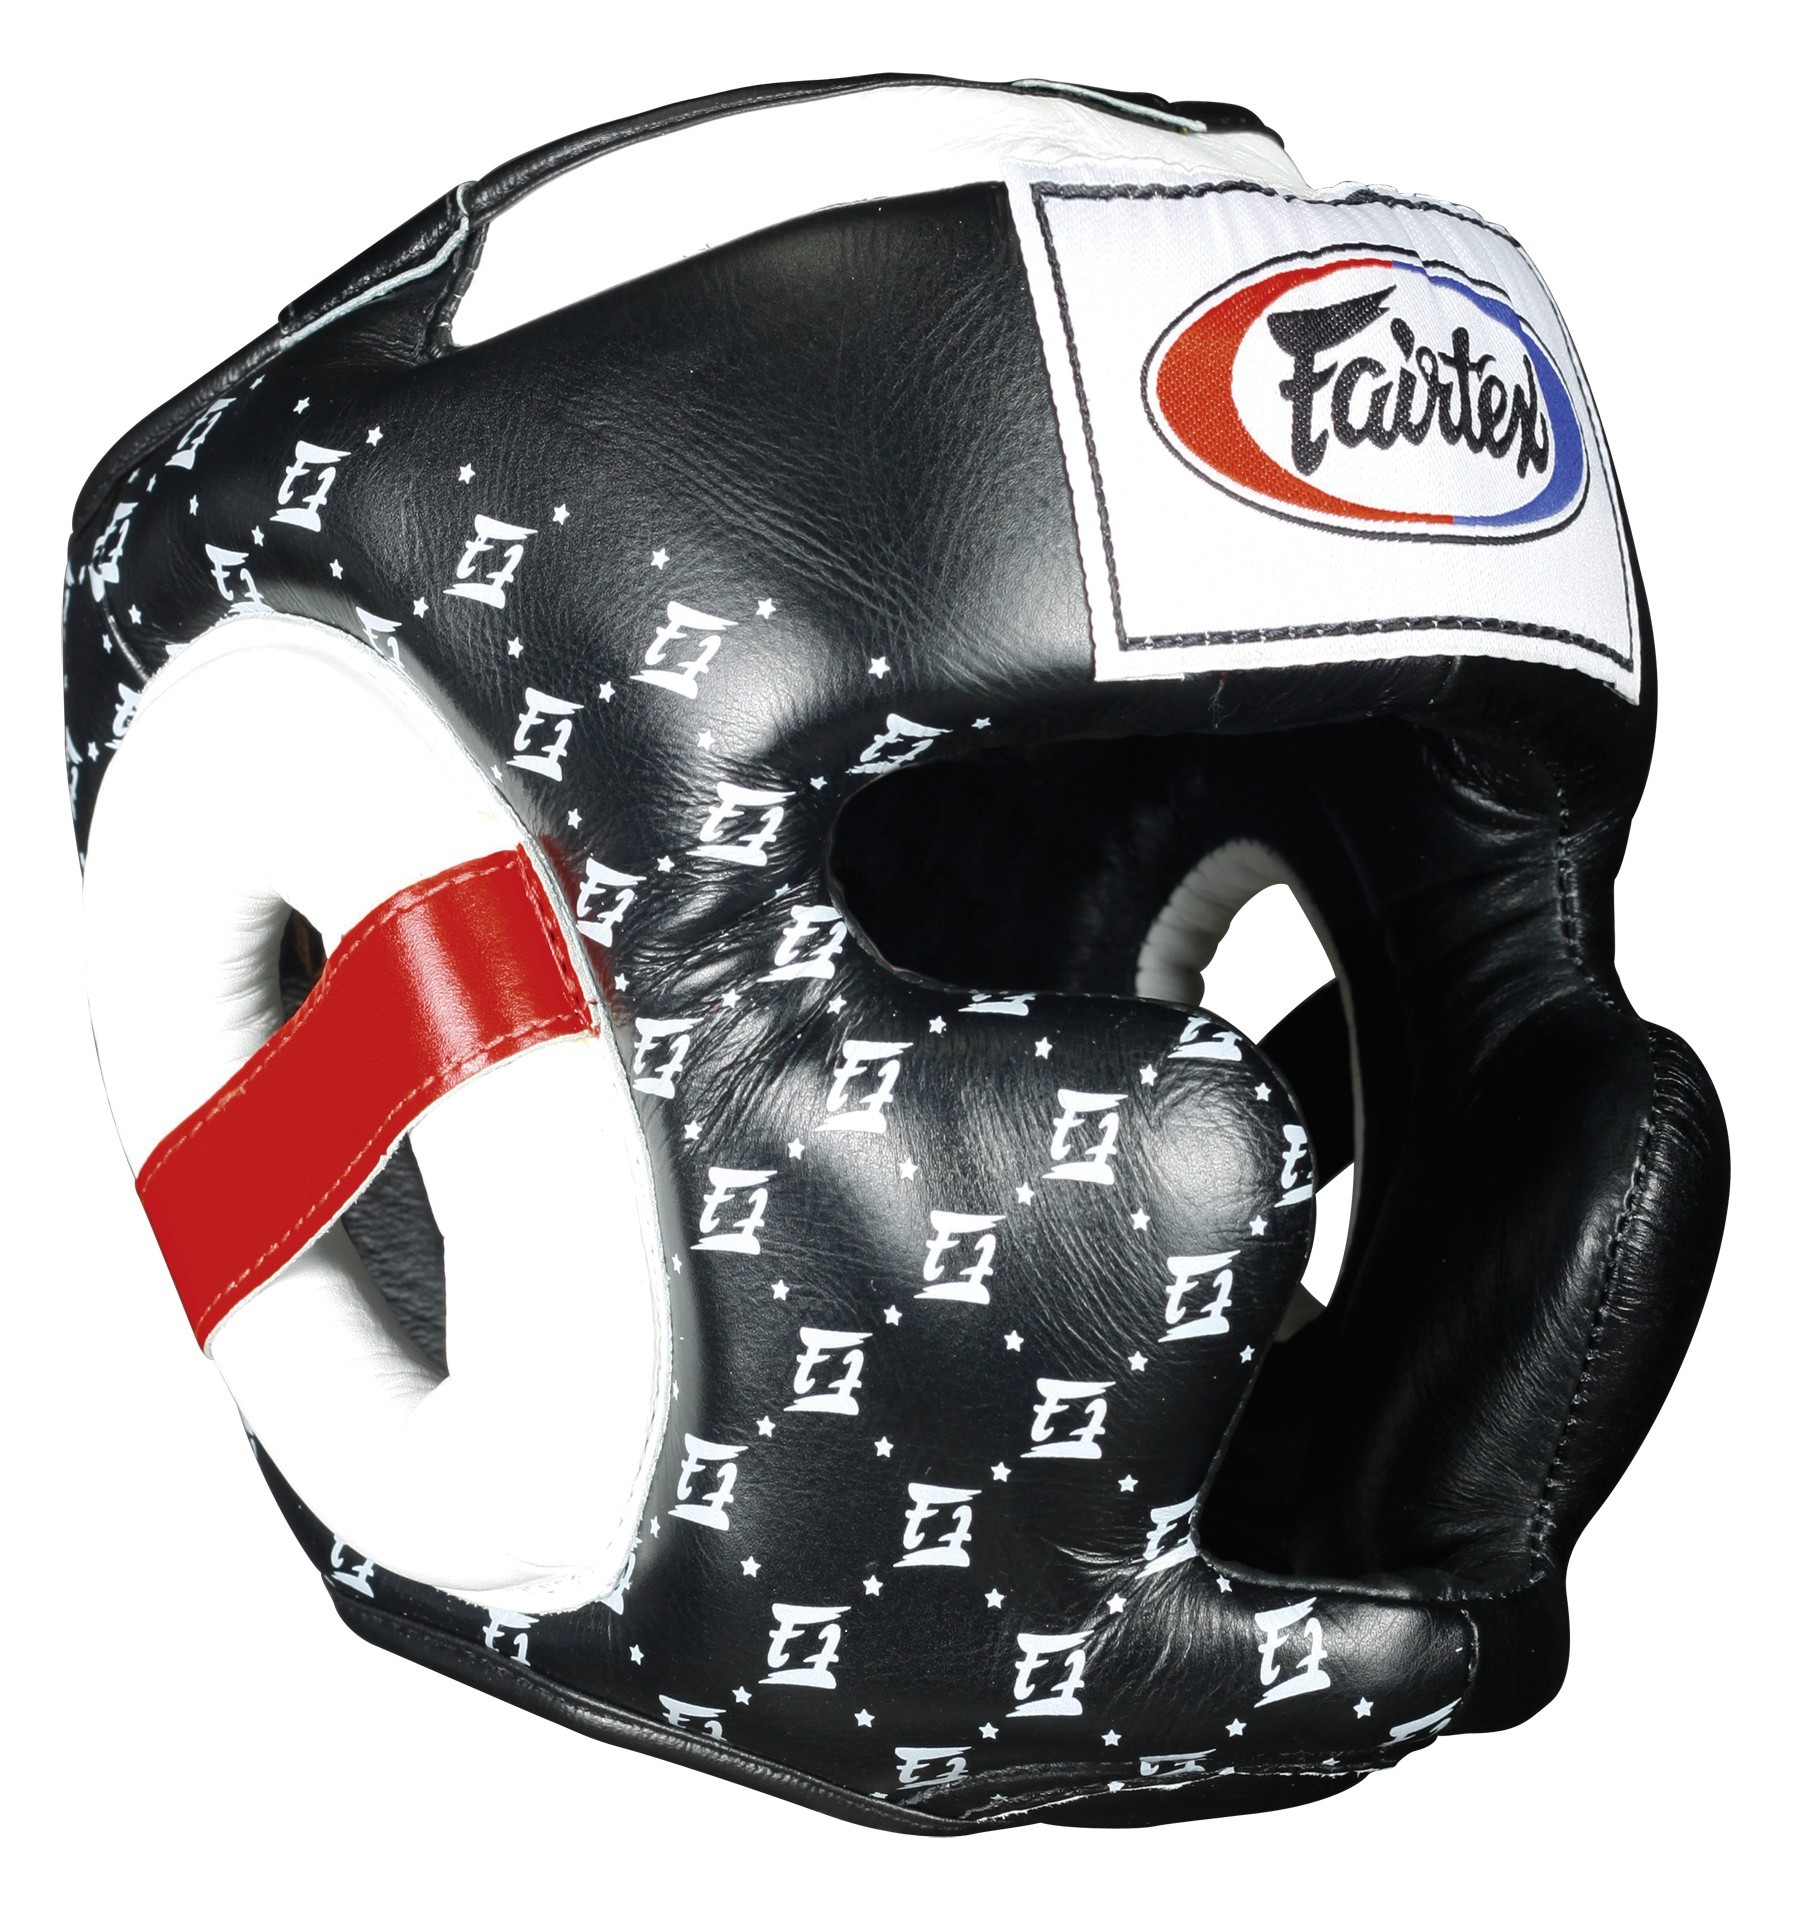 FAIRTEX SUPER SPARRING HEADGUARD